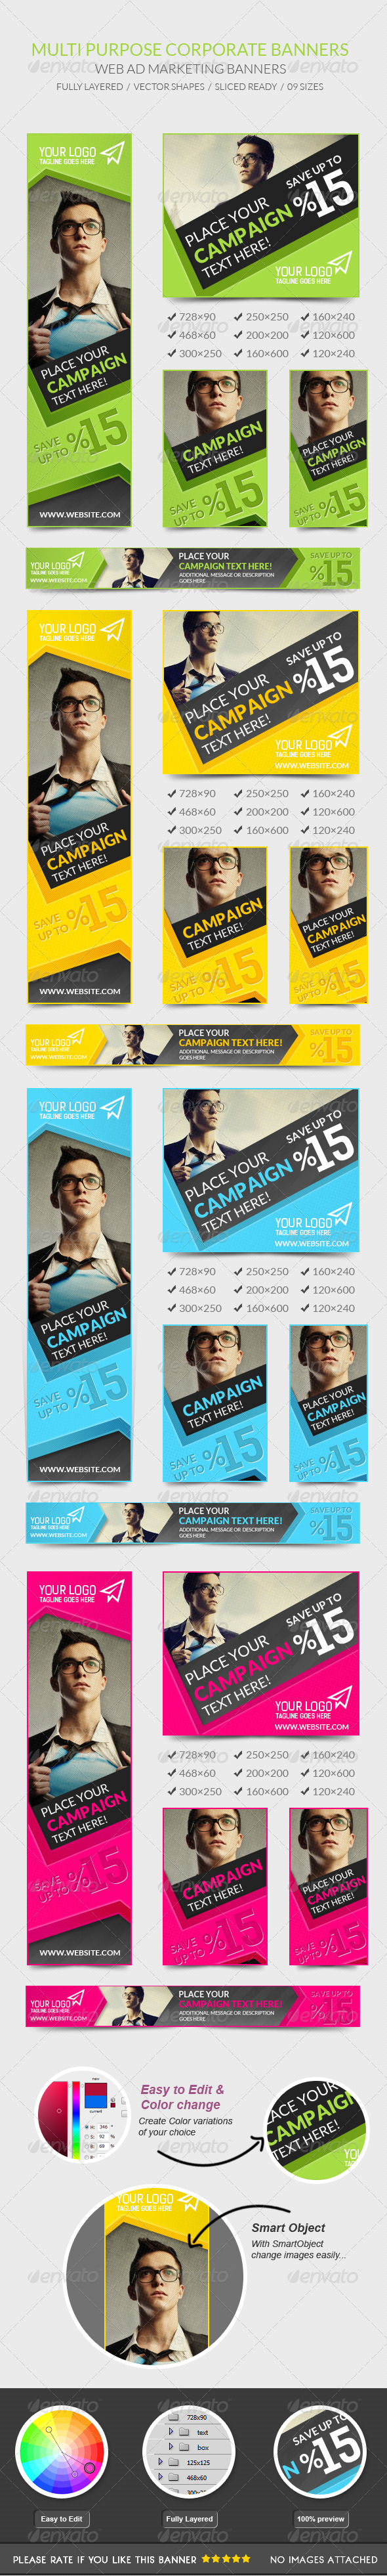 GraphicRiver Multipurpose Corporate Banners 7692940